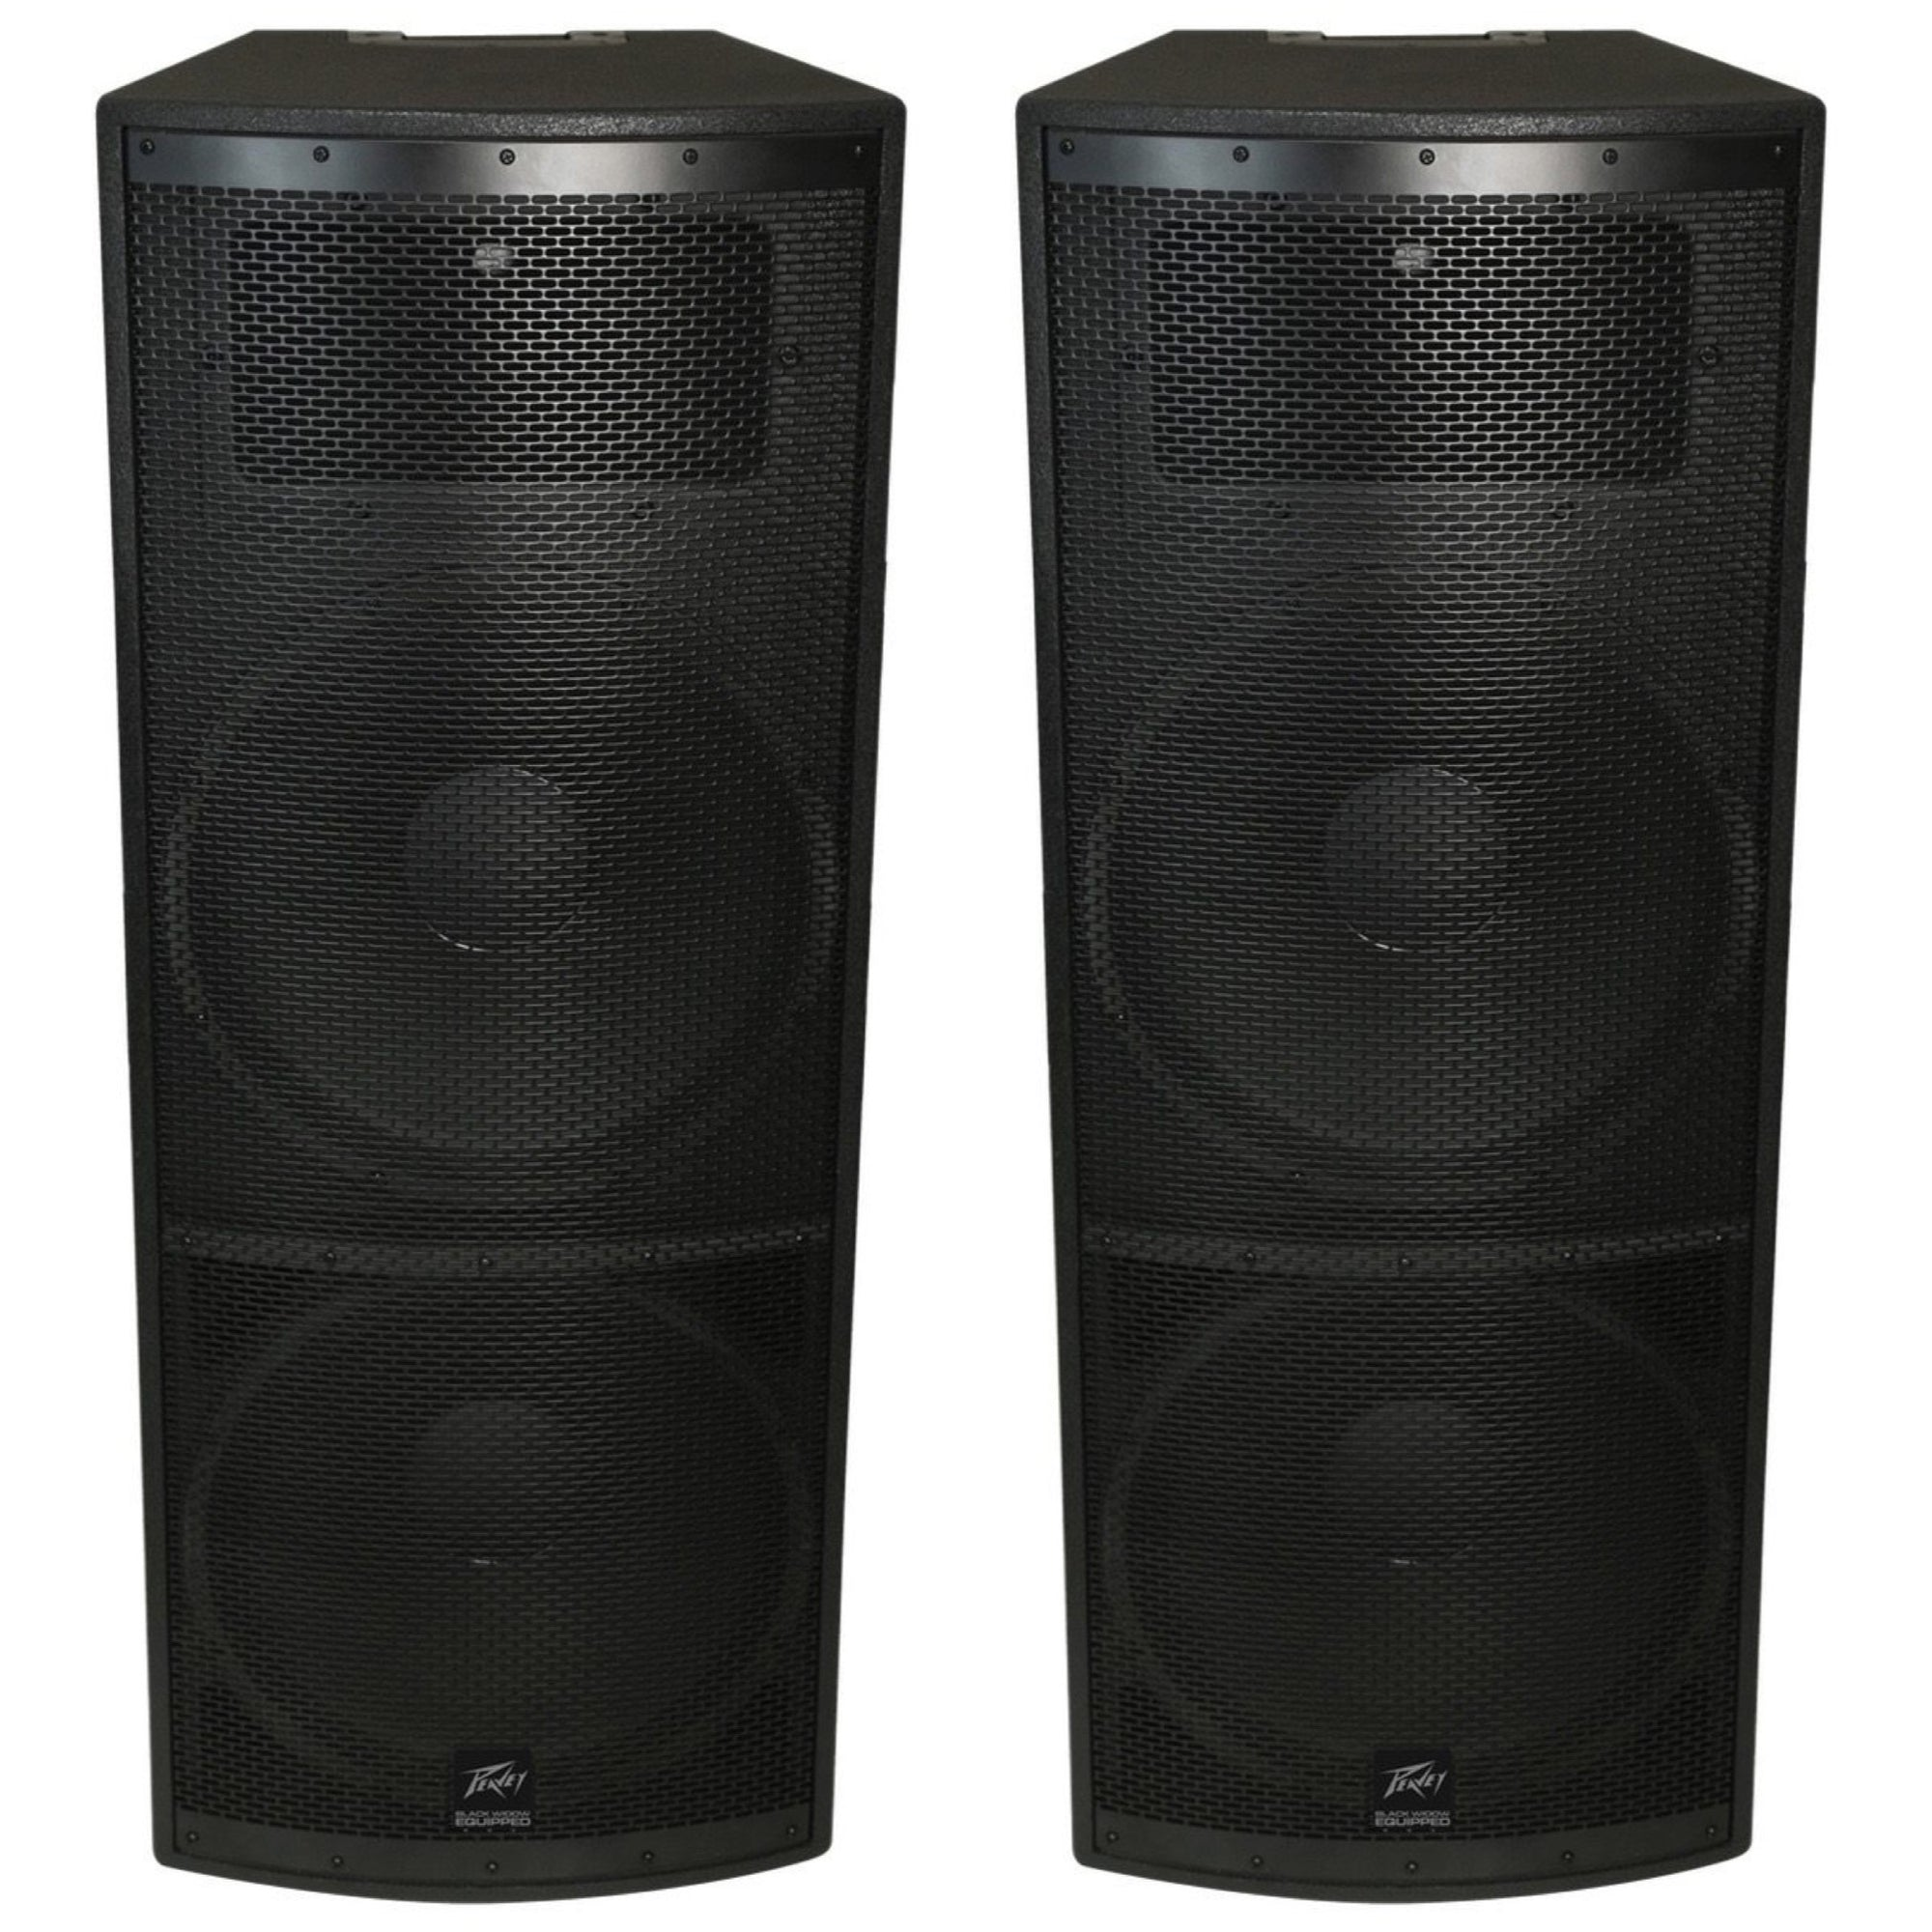 Peavey SP4 II Quasi-3-Way Passive, Unpowered PA Speaker (2000 Watts, 2x15 Inch), Pair